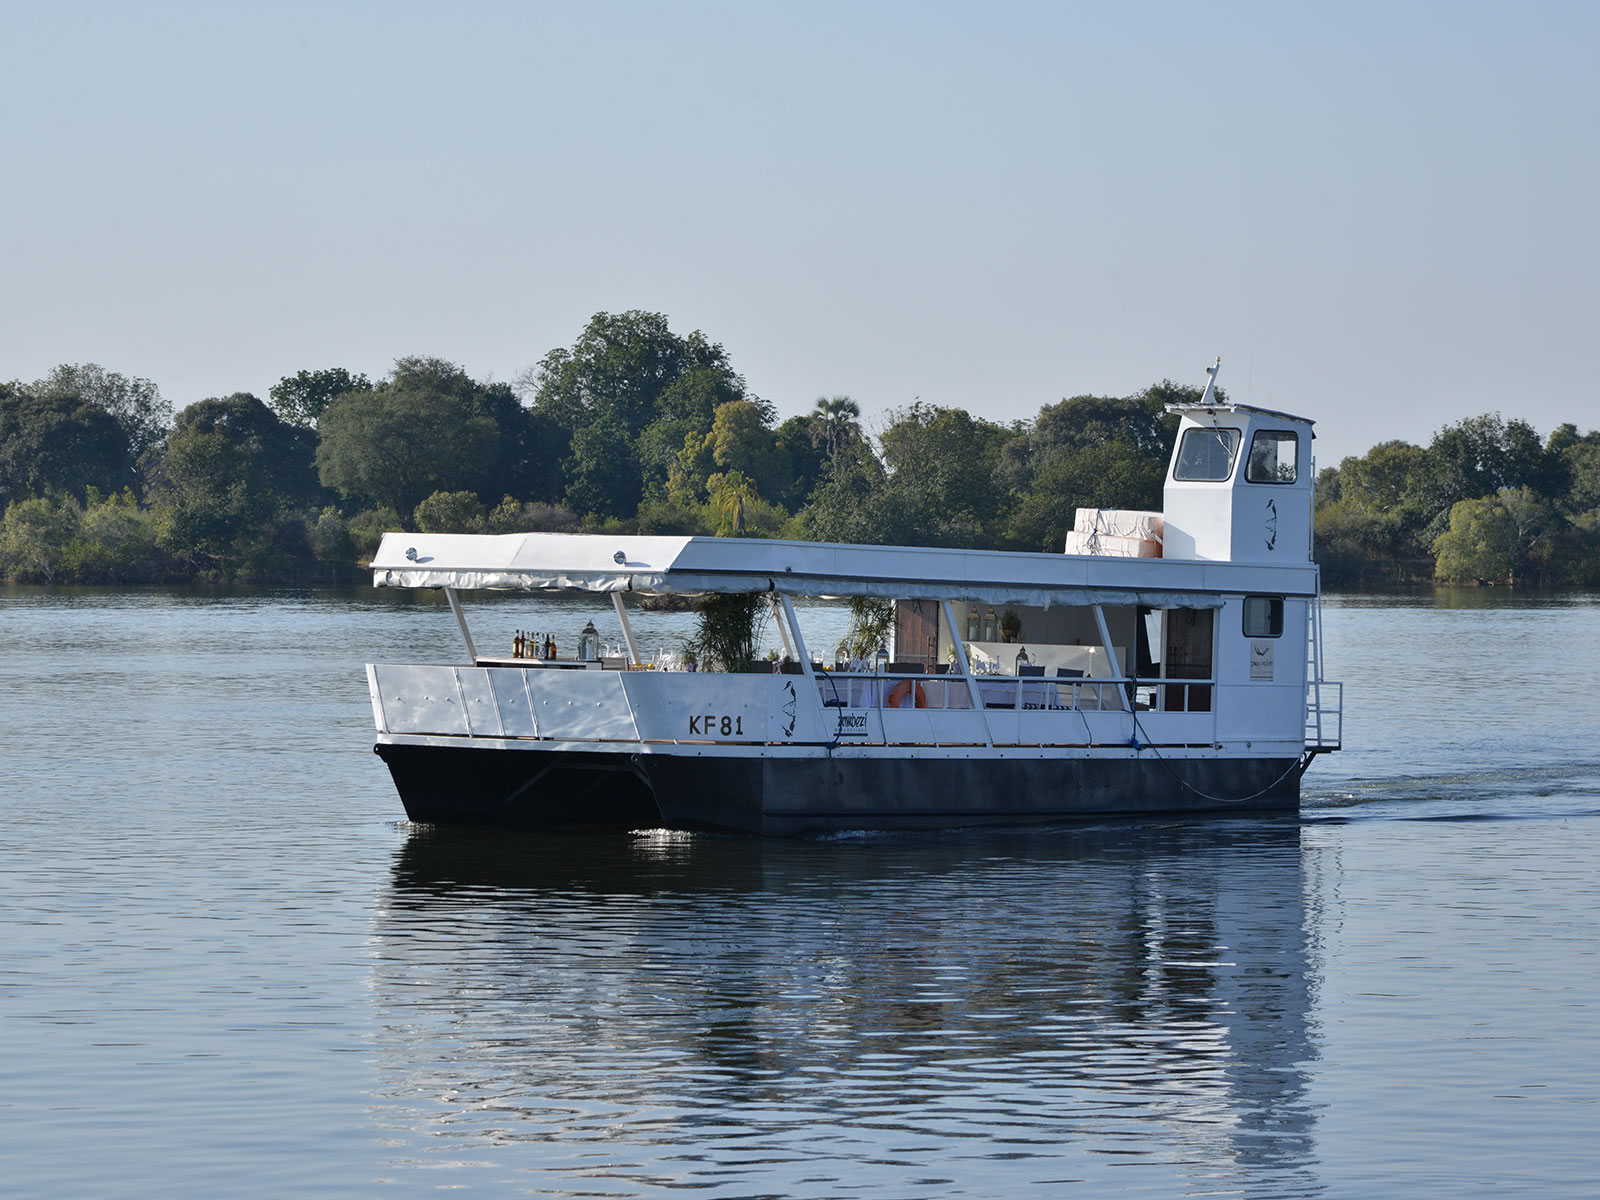 The Zambezi Reflections boat on the Zambezi River - dinner cruise in Victoria Falls, Zimbabwe